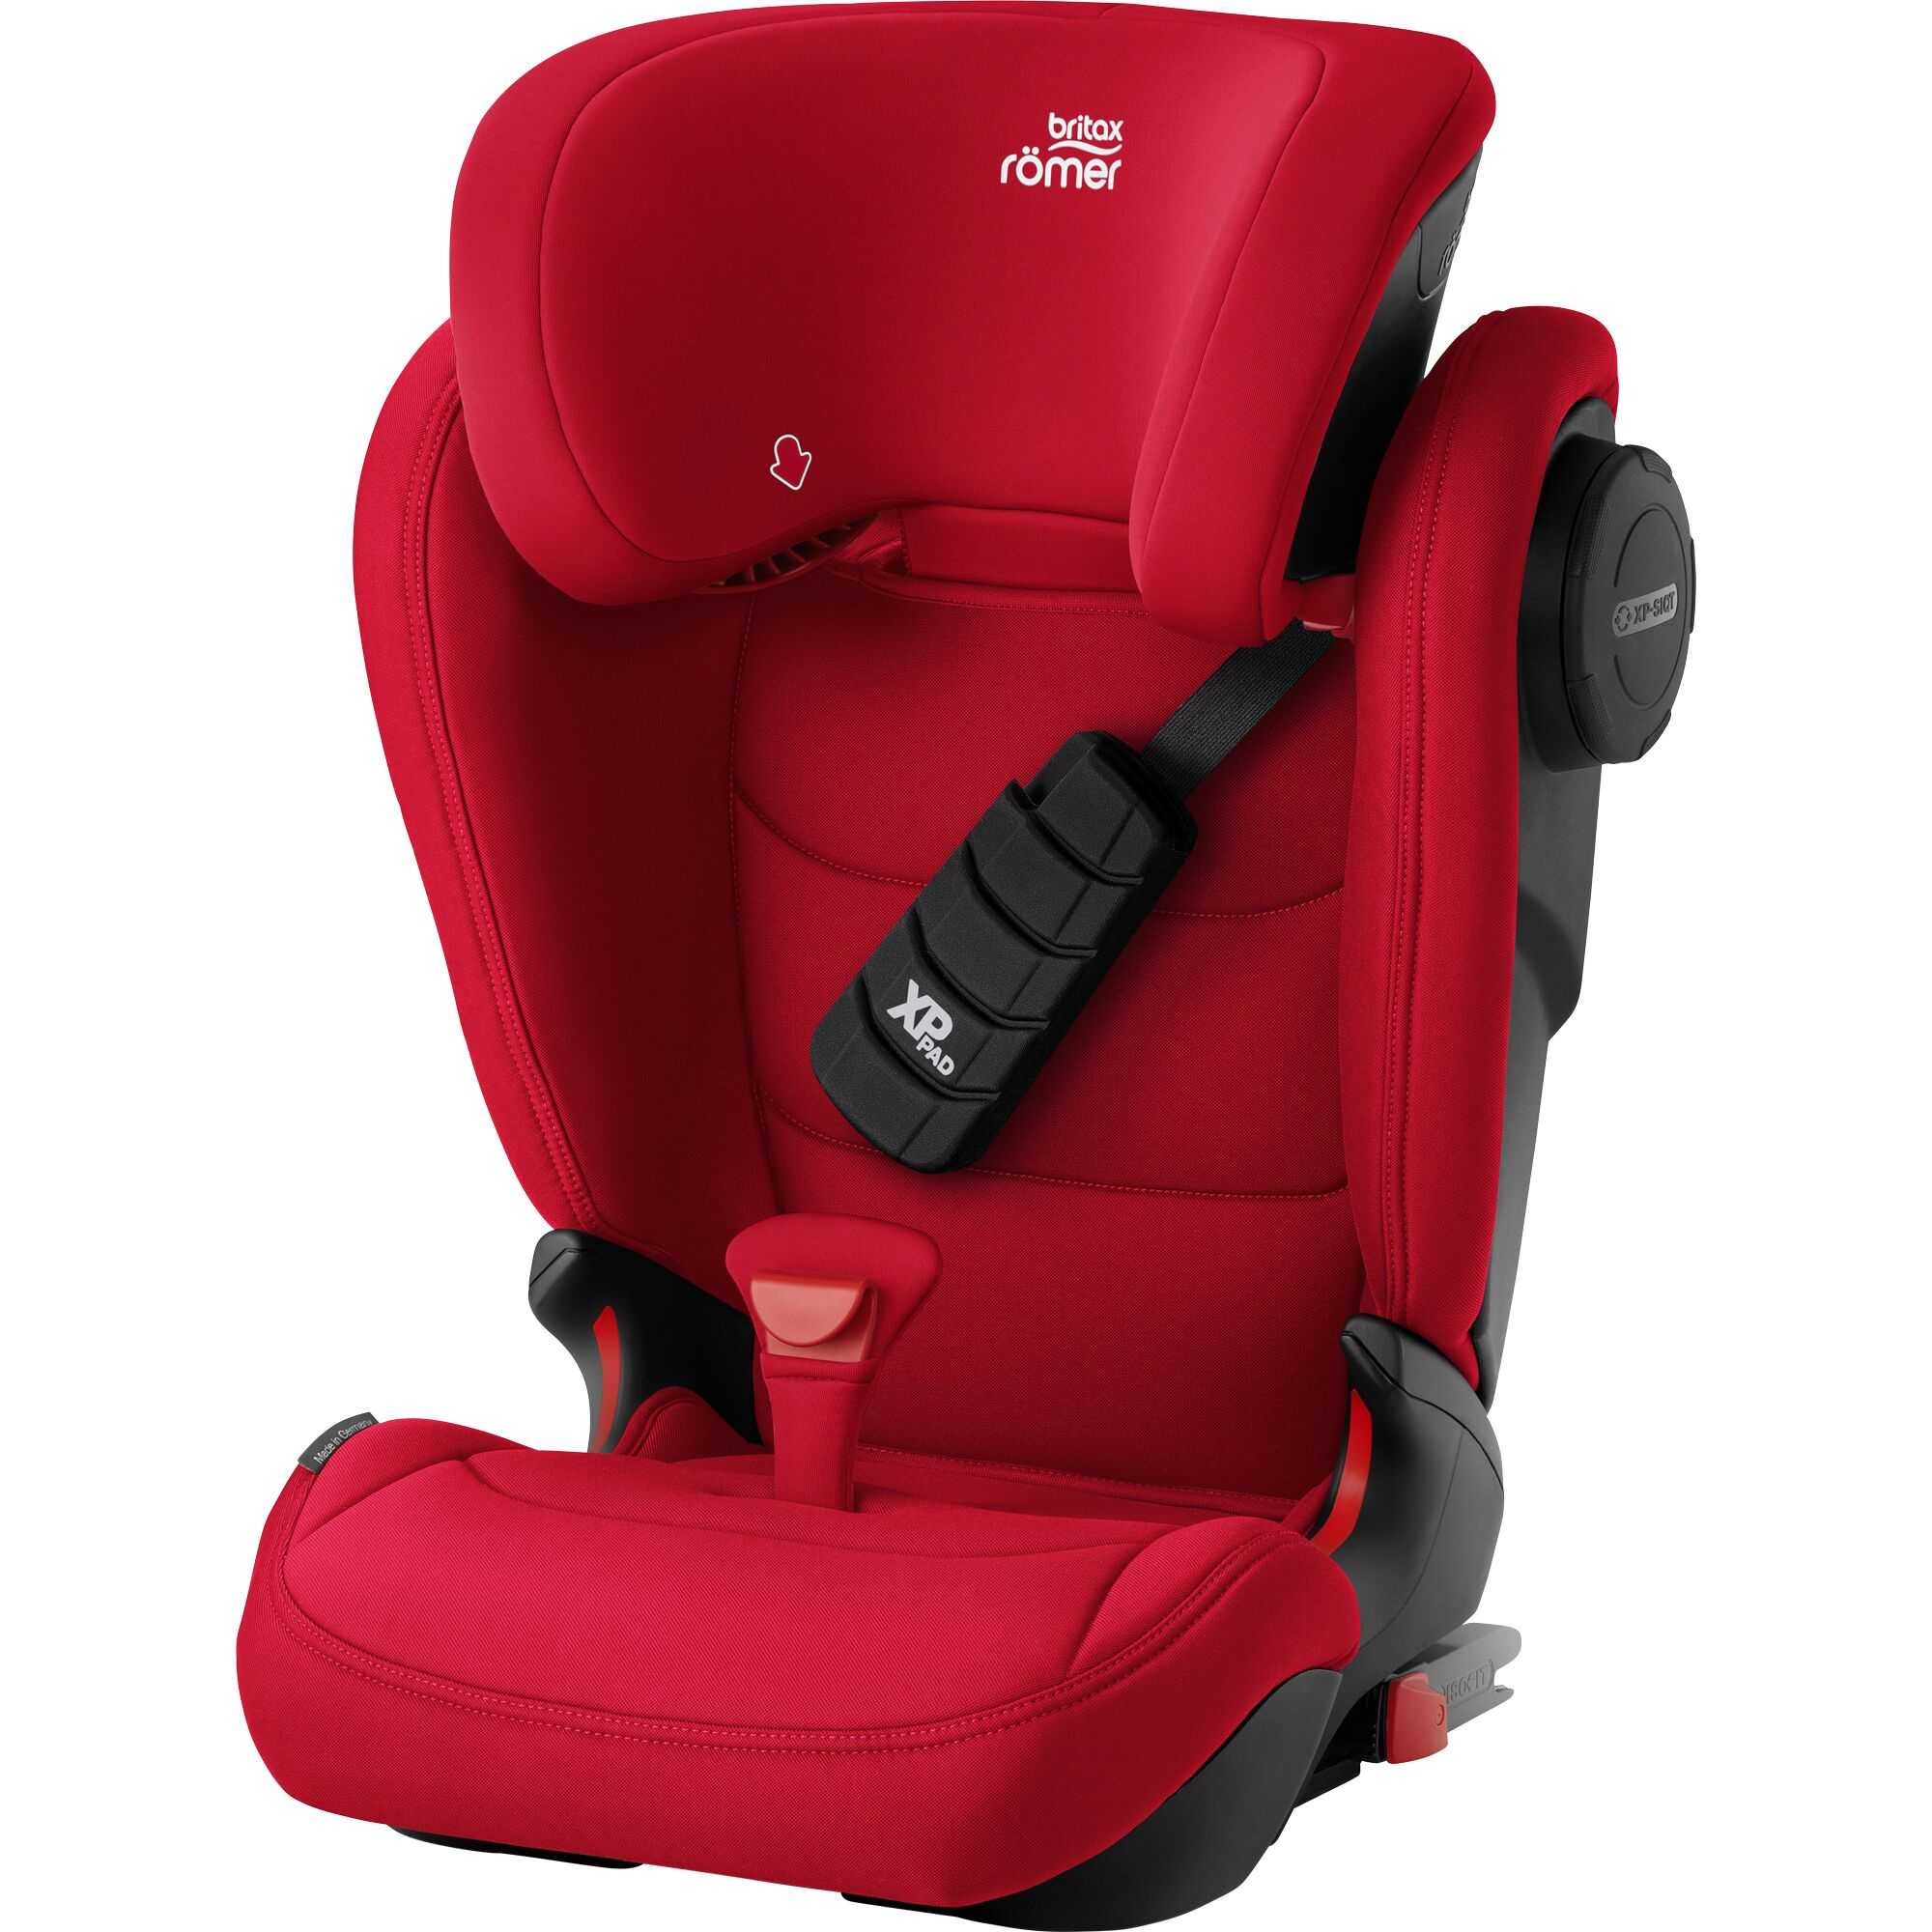 ROMER Kidfix III S 2021 Fire Red